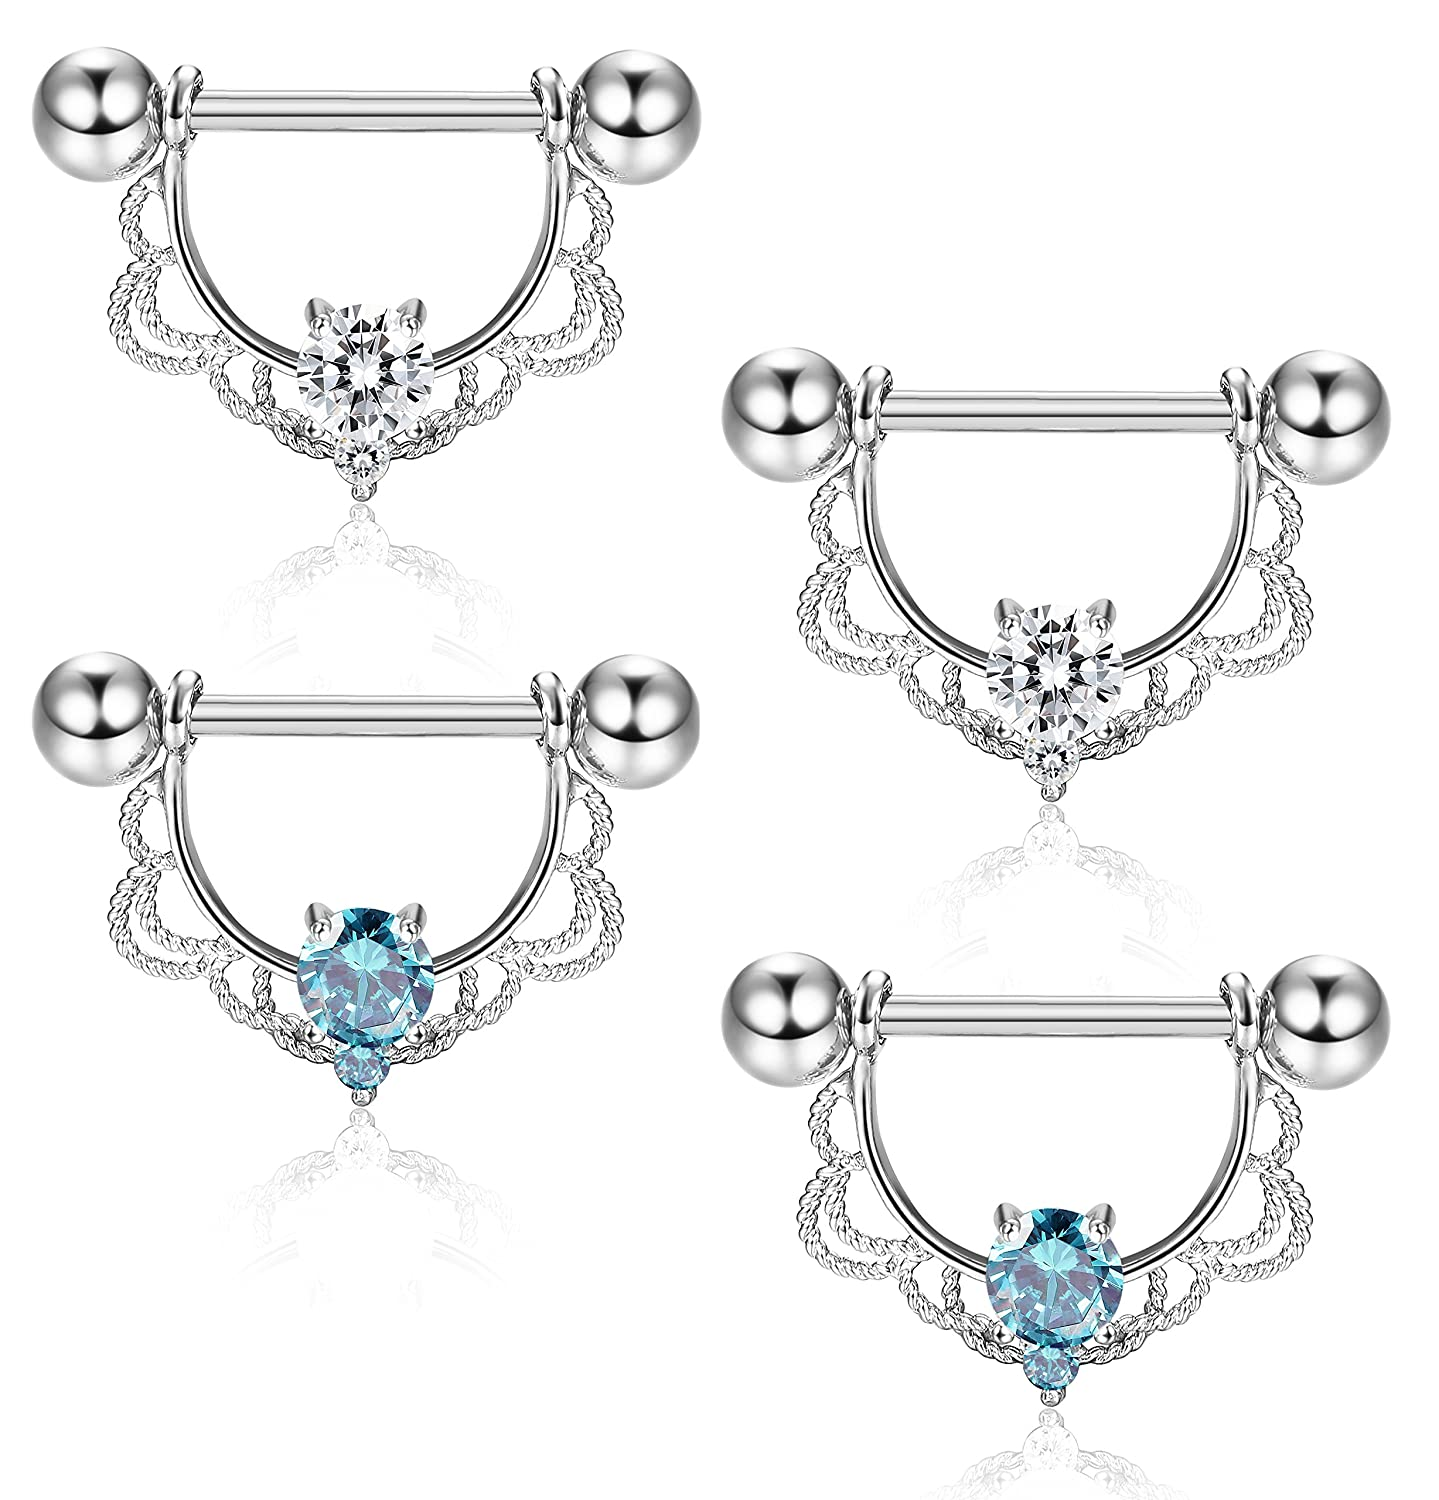 ORAZIO 4Pcs 14G 316L Stainless Steel CZ Opal Nipple Piercing Barbell Belly Button Ring for Women CC06H-WP